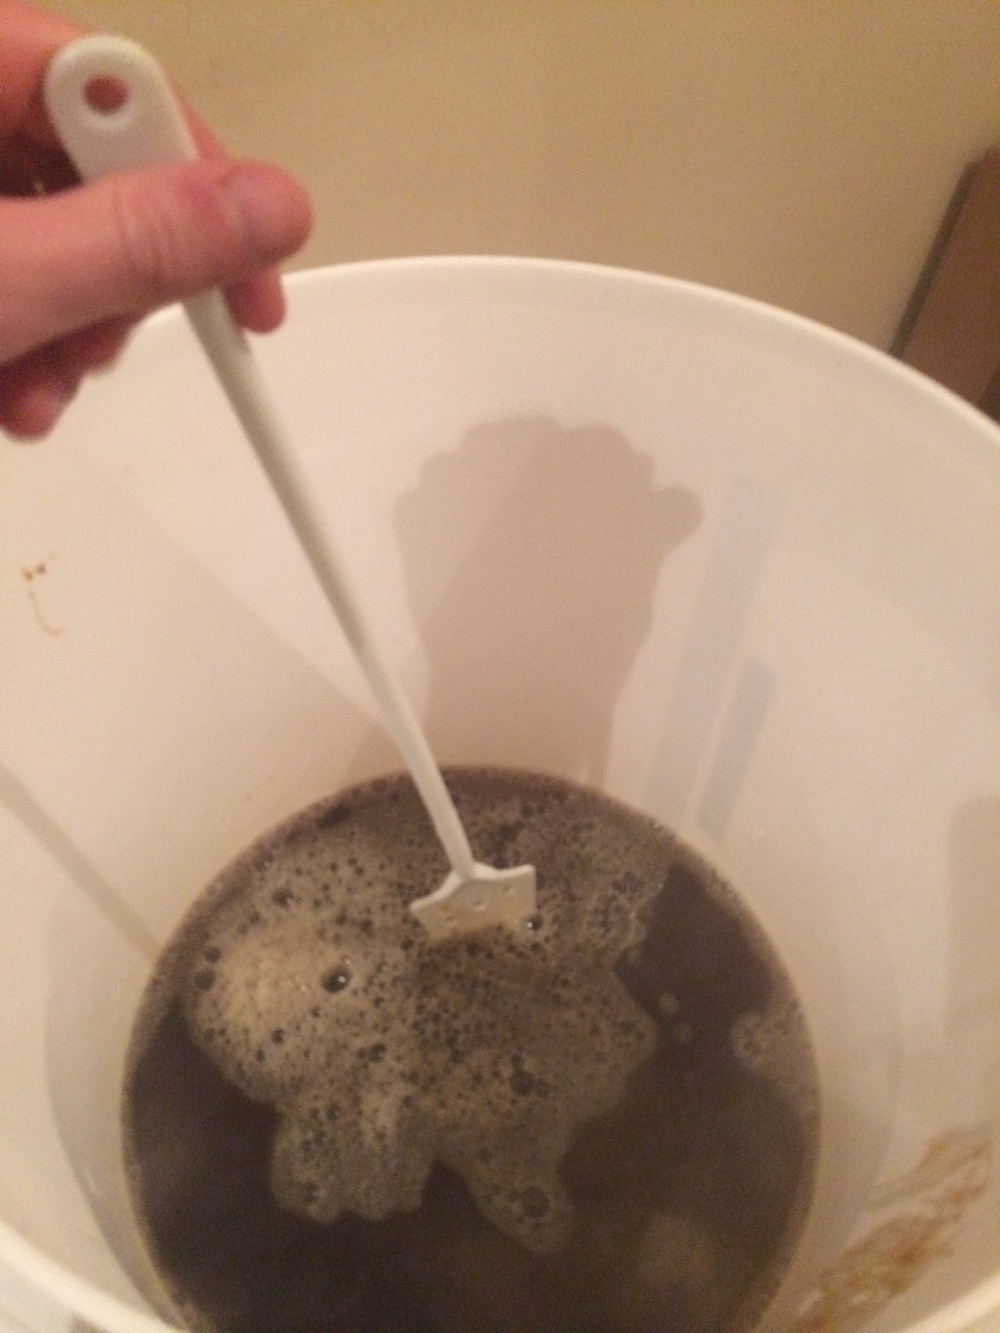 Stirring up the IPA kit